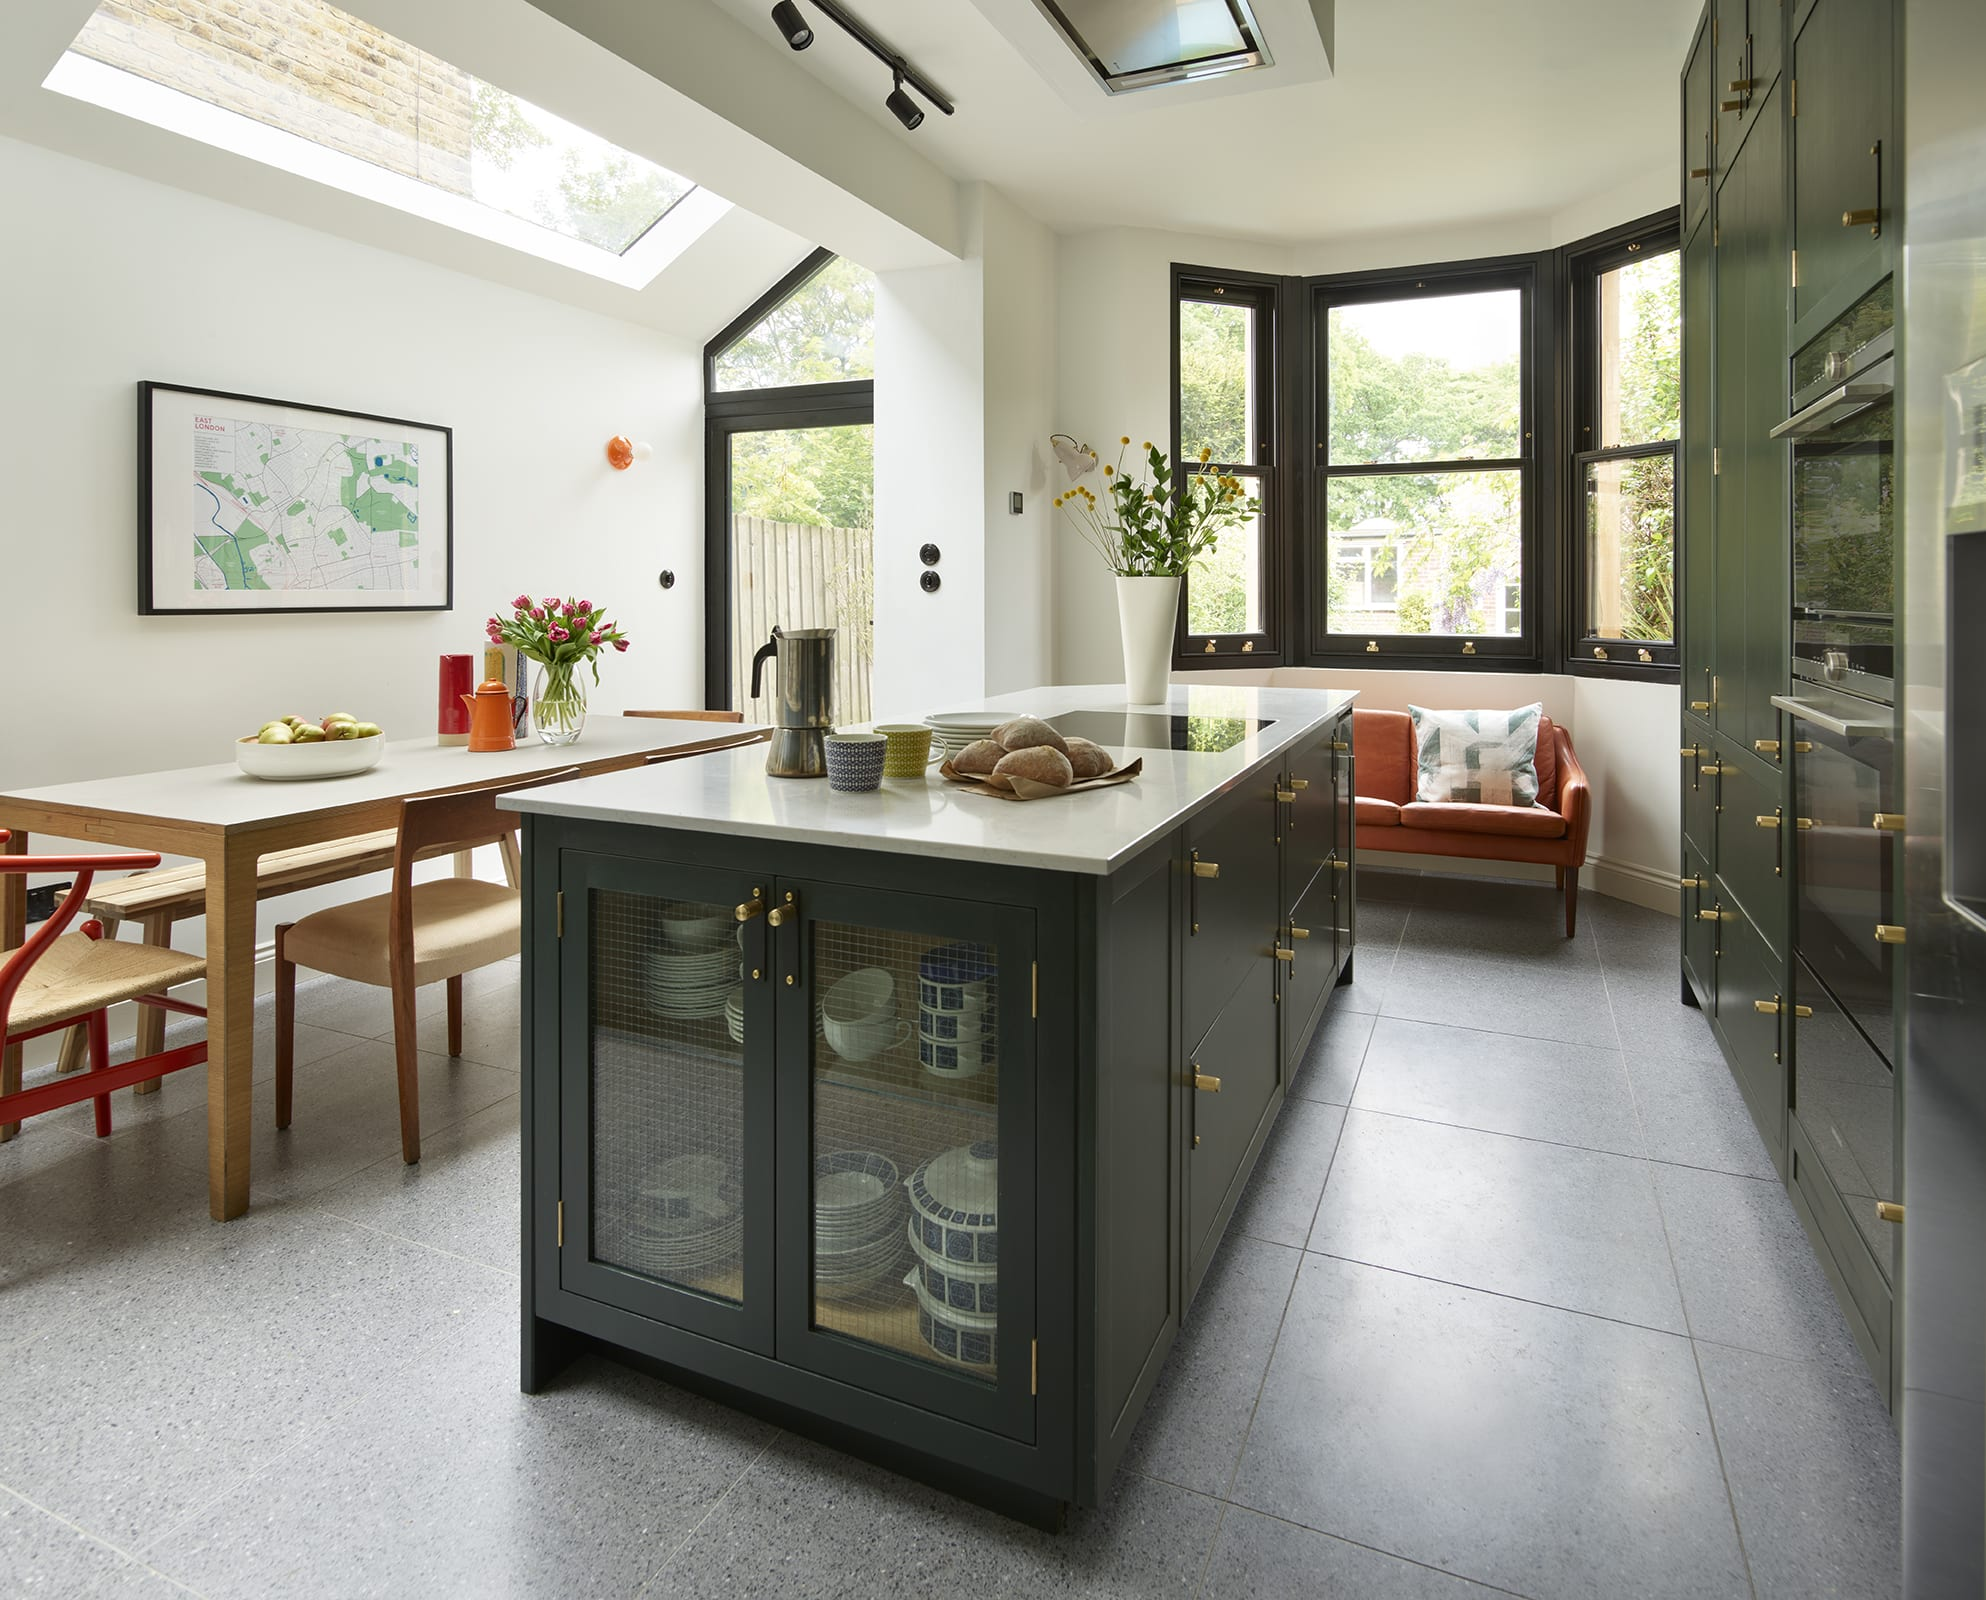 Pleasing Fitting A Dining Space In The Kitchen What Are Your Options Cjindustries Chair Design For Home Cjindustriesco